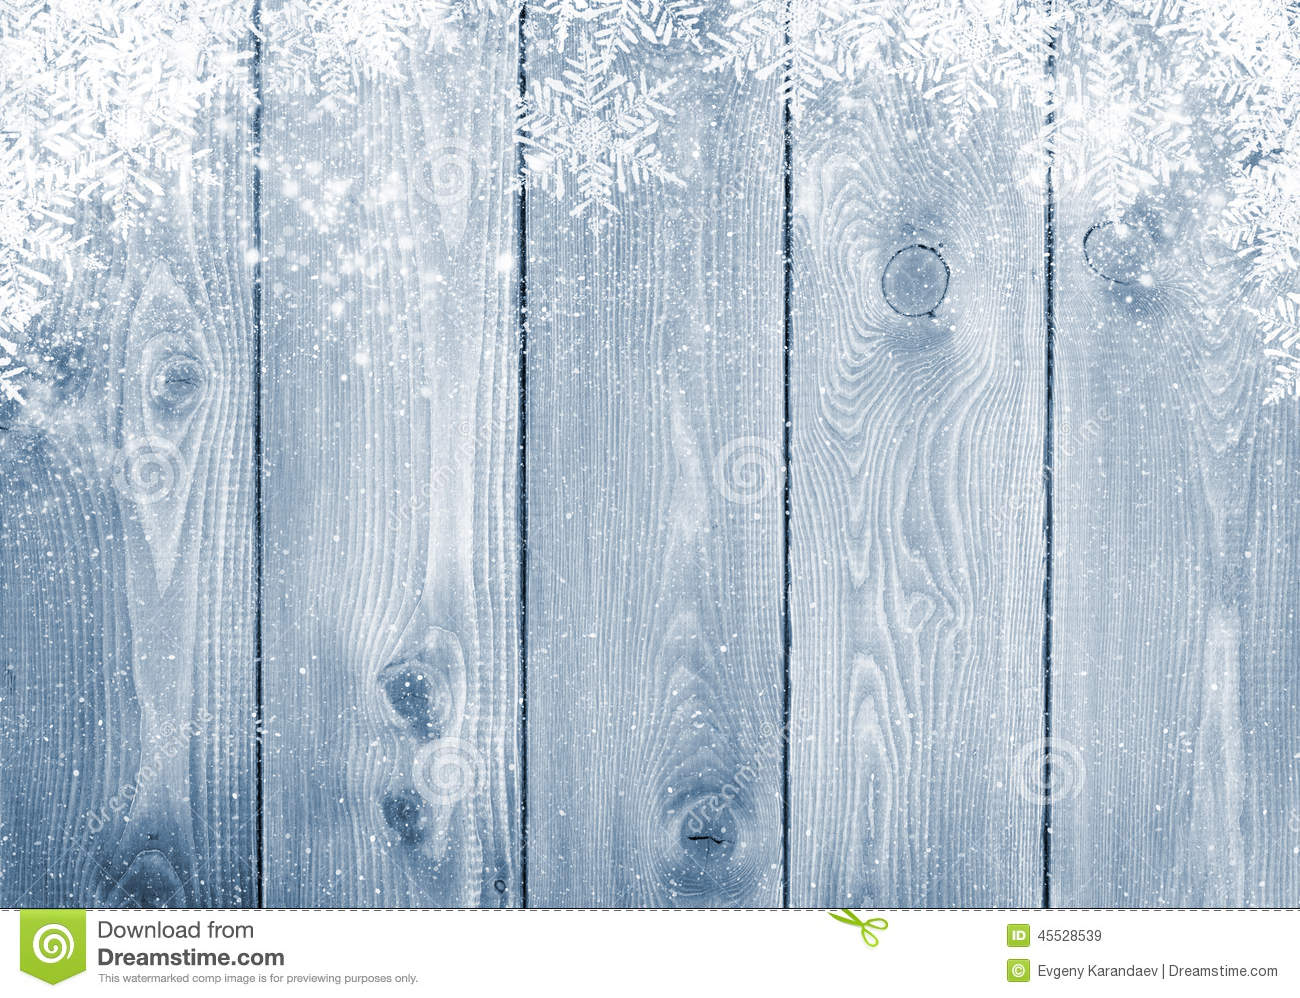 Free 3d Snow Falling Wallpaper Blue Wood Texture With Snow Stock Photo Image 45528539